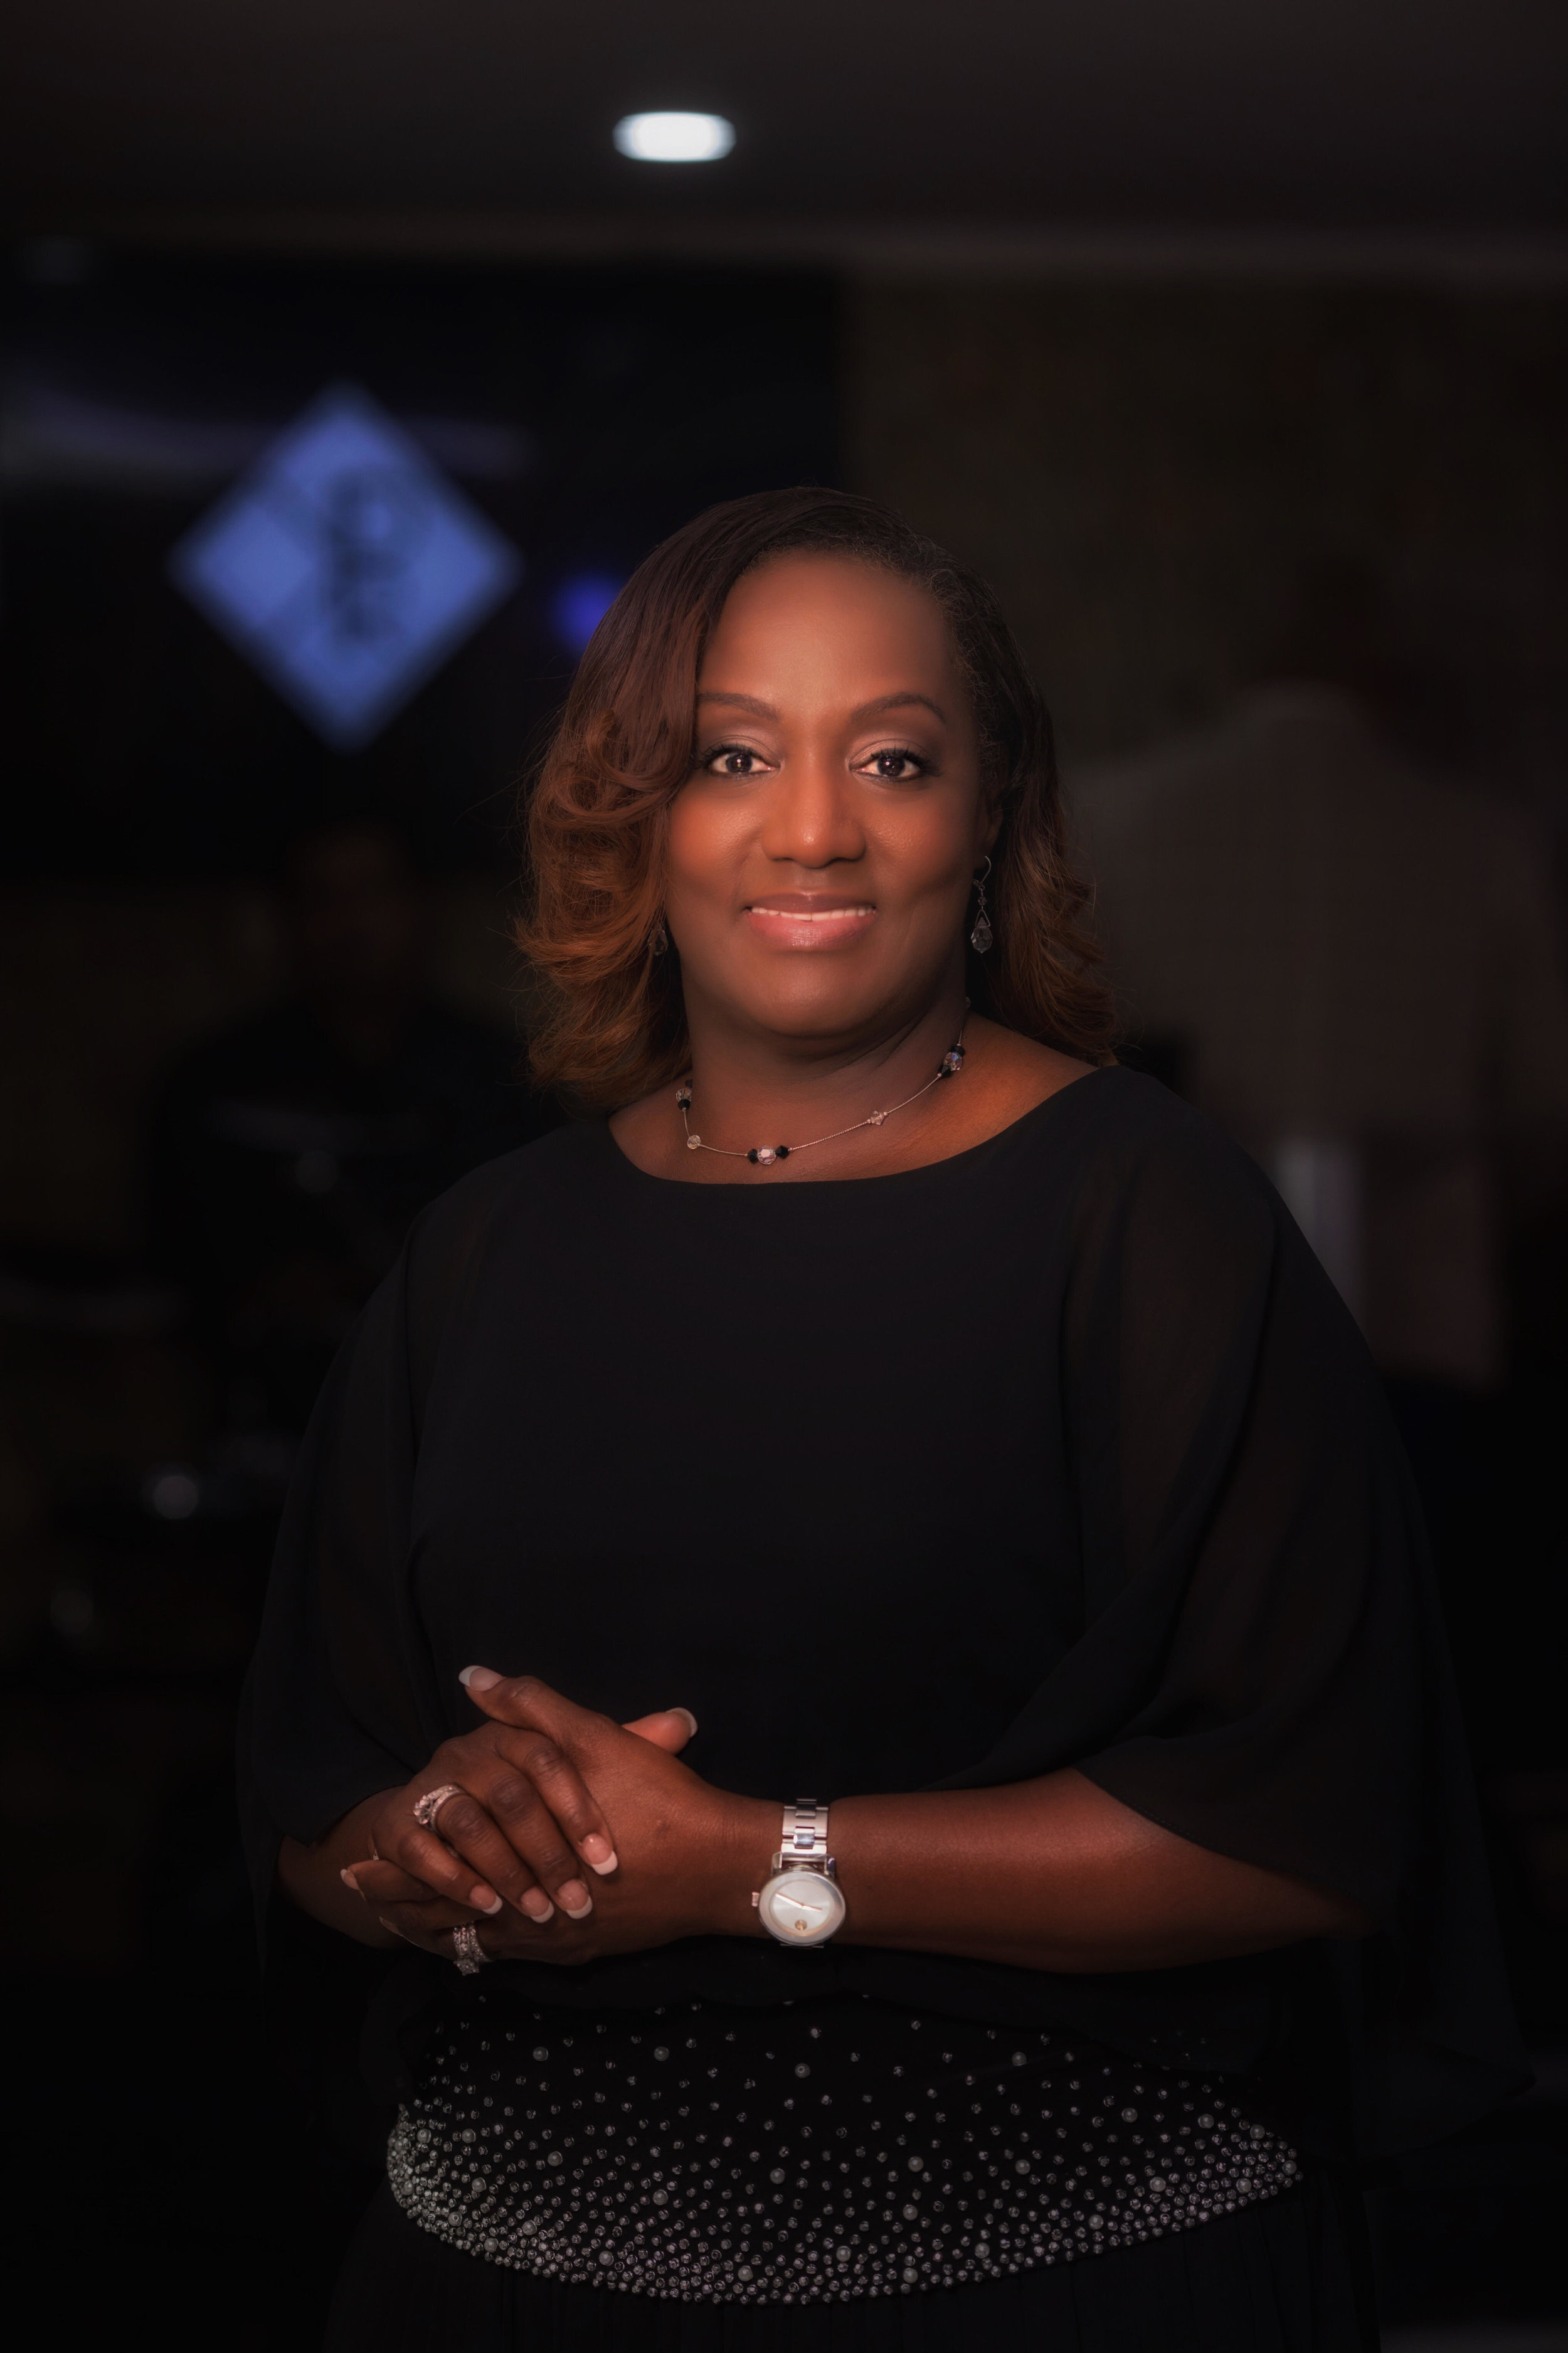 About Apostle Karen Register-Veney - Apostle Karen Register-Veney is an apostolic trailblazer and a strong, prophetic voice to the nations who carries an authentic oil, unique sound, and an anointing that exemplifies and demonstrates the Kingdom of God.Her strategic leadership and hands-on approach in equipping, building, and leading the Body of Christ has enabled her to travel the world, empowering both people and churches to reach their maximum potential in God. Apostle Karen is an intuitive Master Builder who revolutionizes ministries and helps build them into powerful, spirit-filled, God-led churches that transform their communities. Serving in ministry full-time through preaching, teaching, equipping, and training, Apostle Karen also provides spiritual covering and oversight for several sons, daughters, and ministries around the world.Learn More